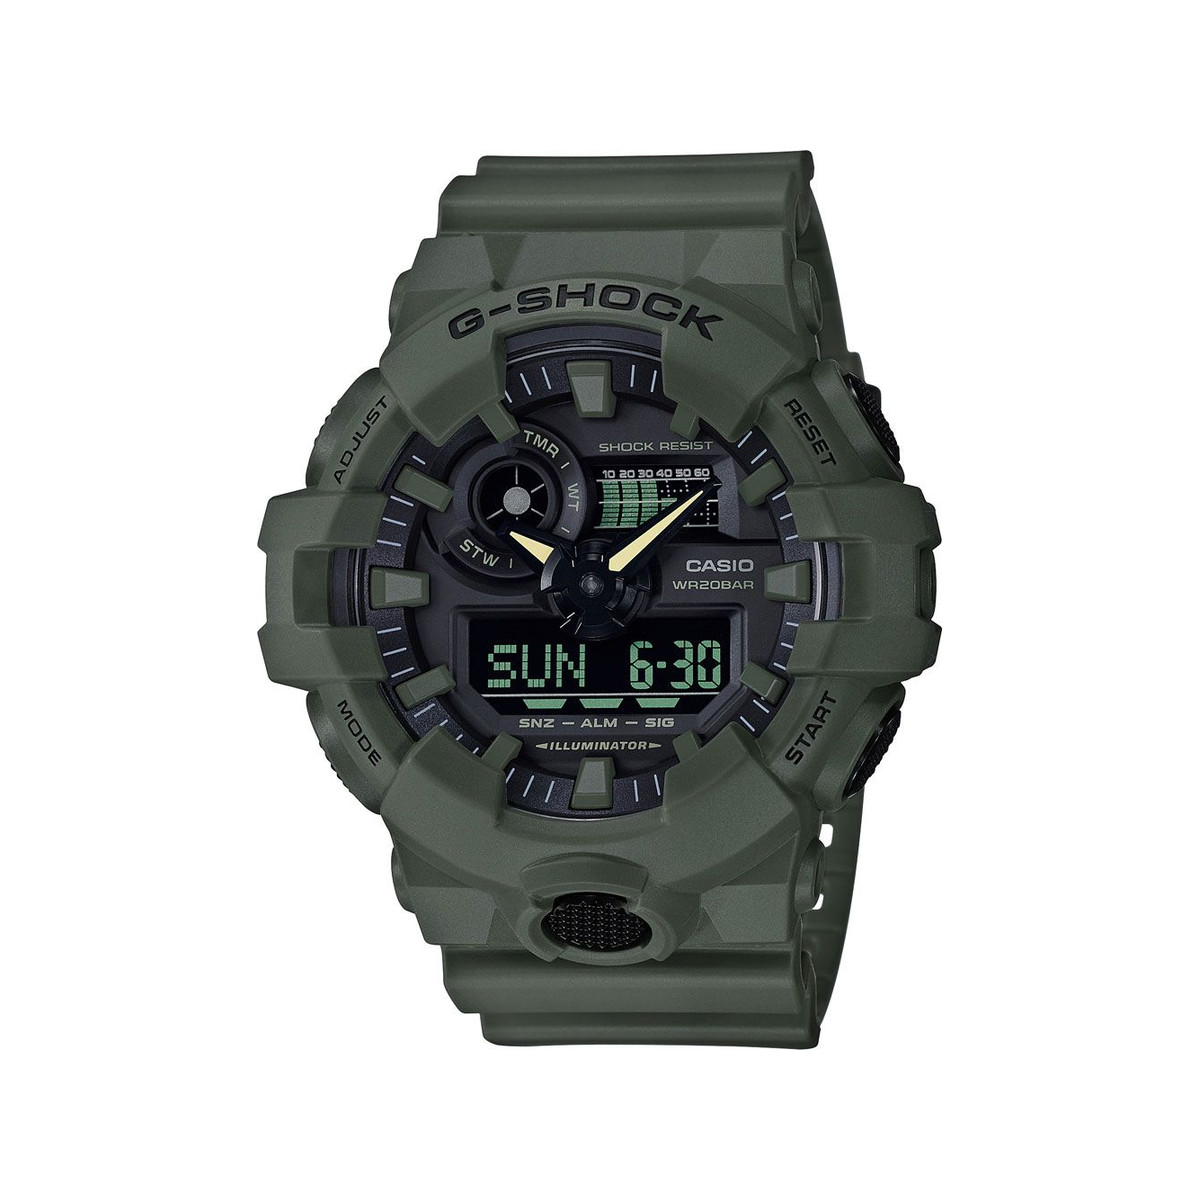 Montre Casio G-Shock homme digitale résine